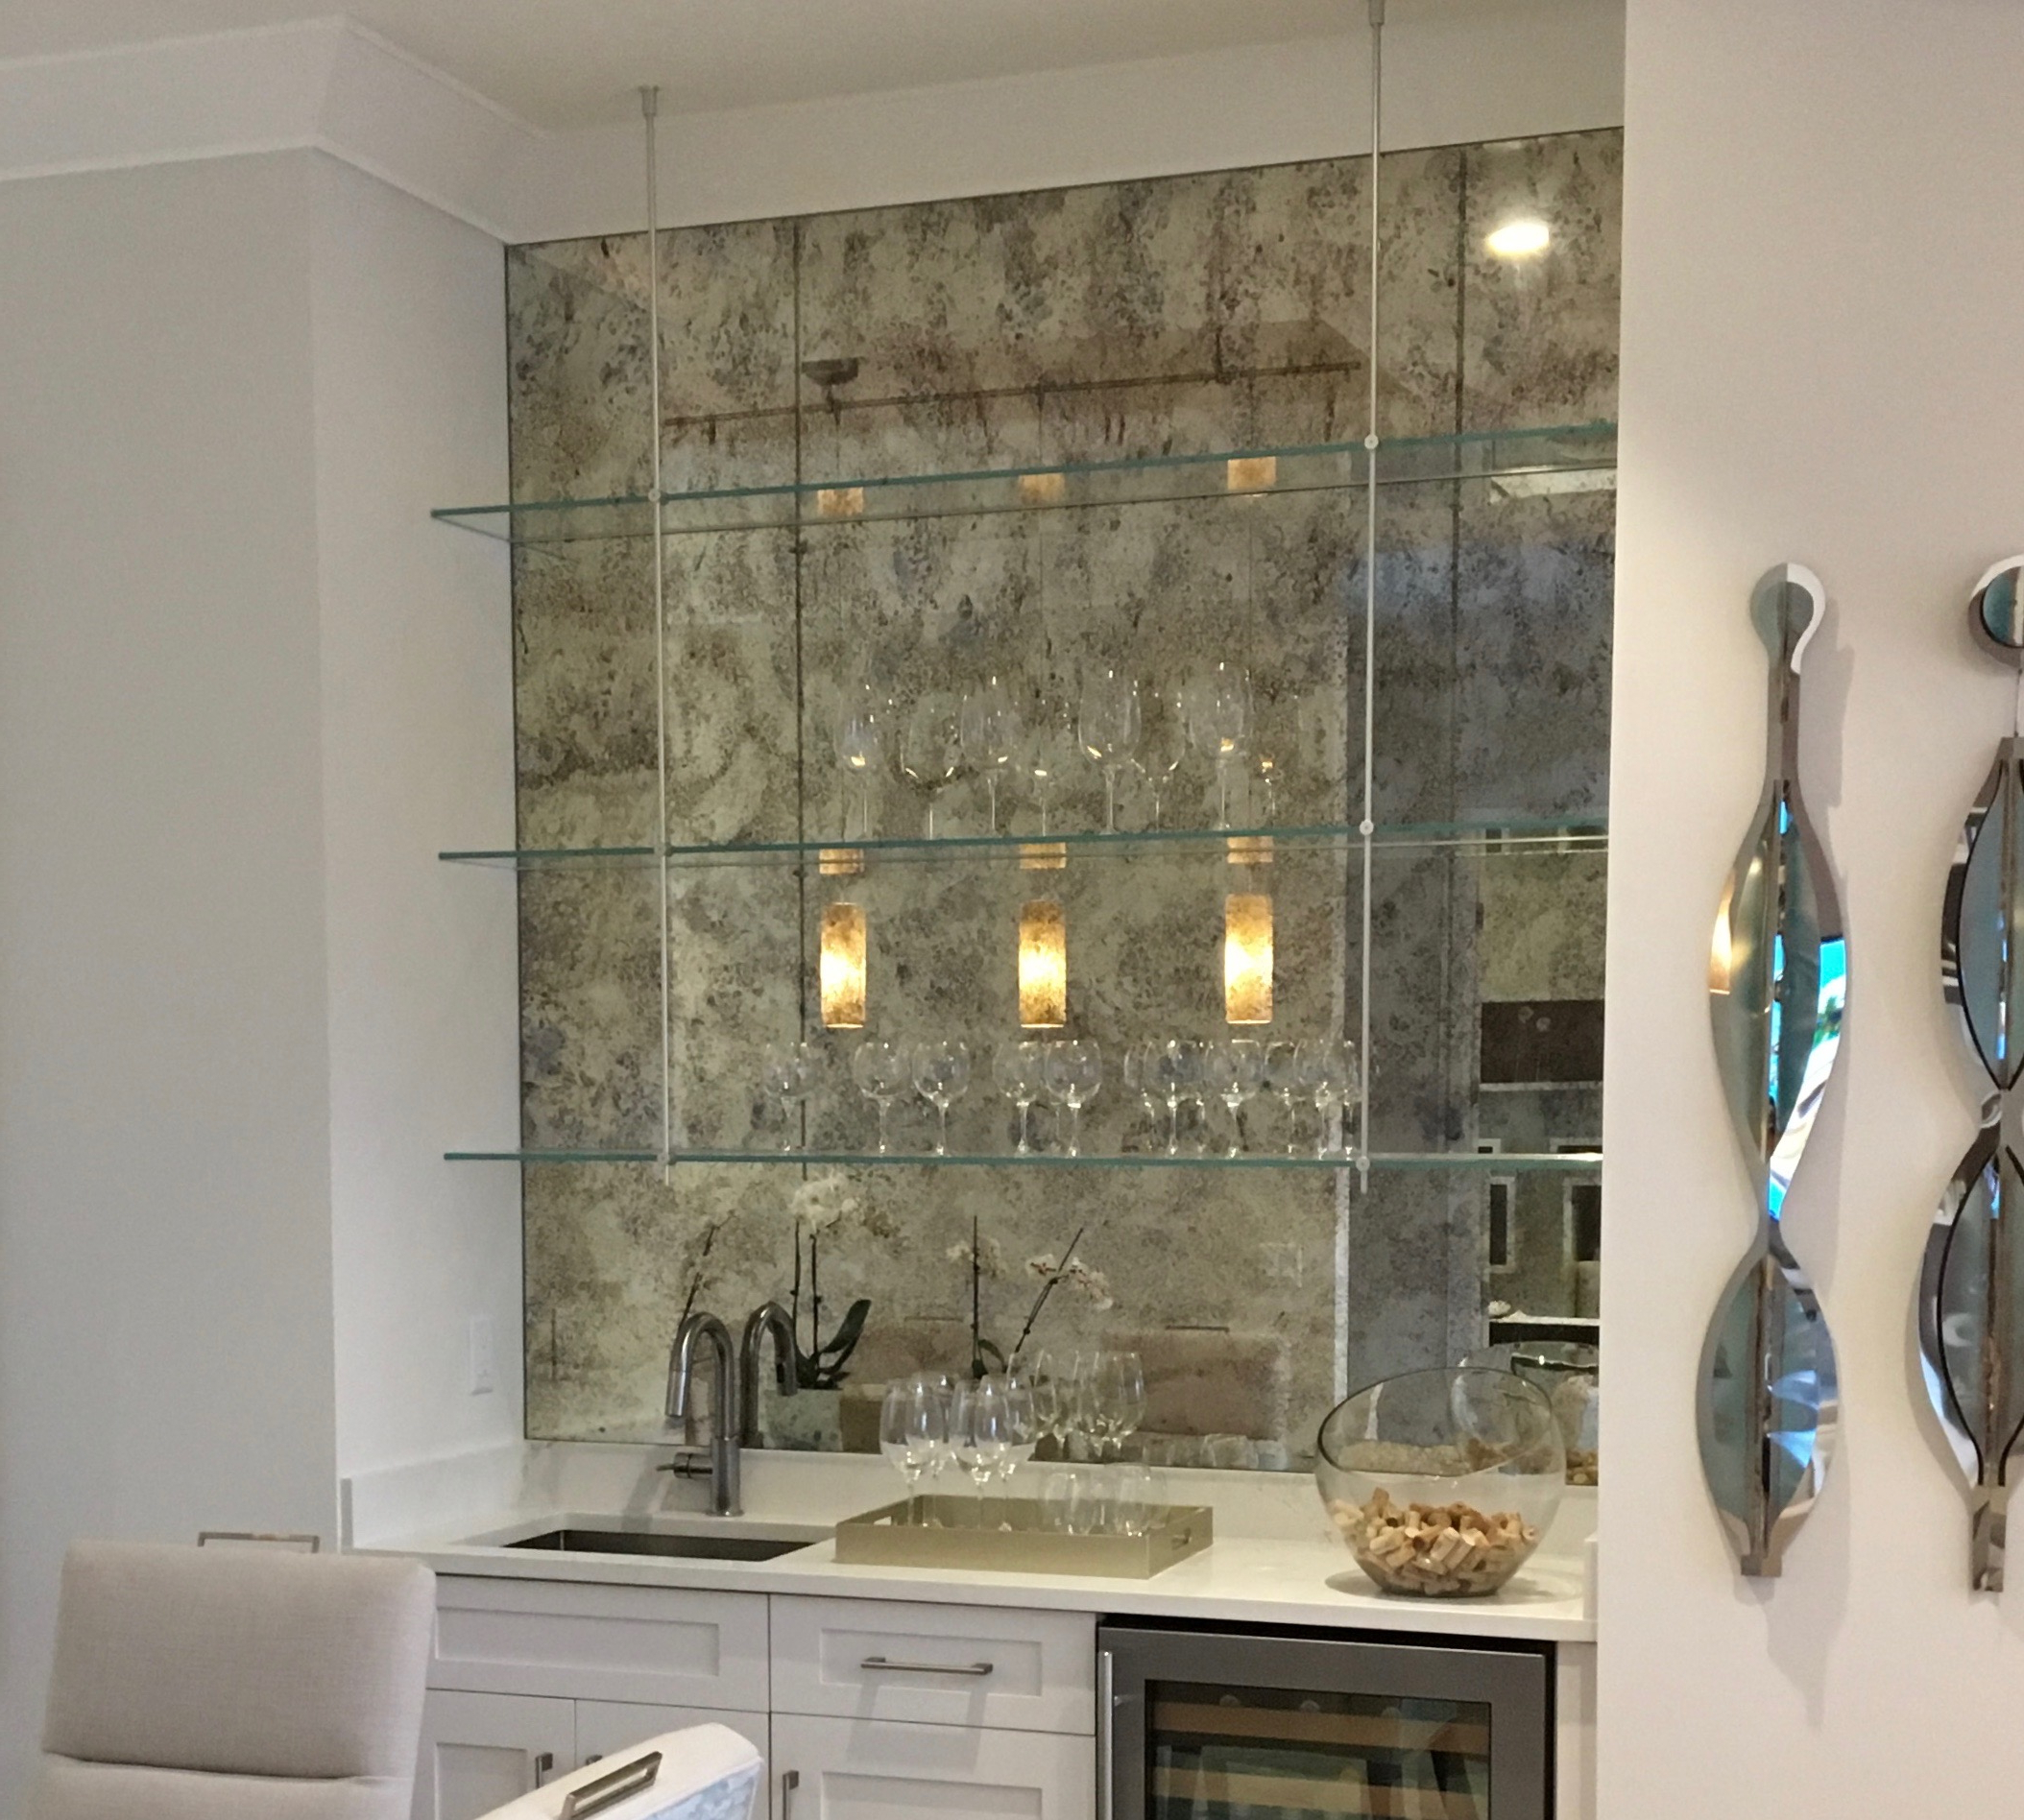 Stick On Wall Mirror Tiles Within Most Recently Released Antique Mirror Subway Tiles – Builders Glass Of Bonita, Inc. (Gallery 13 of 20)